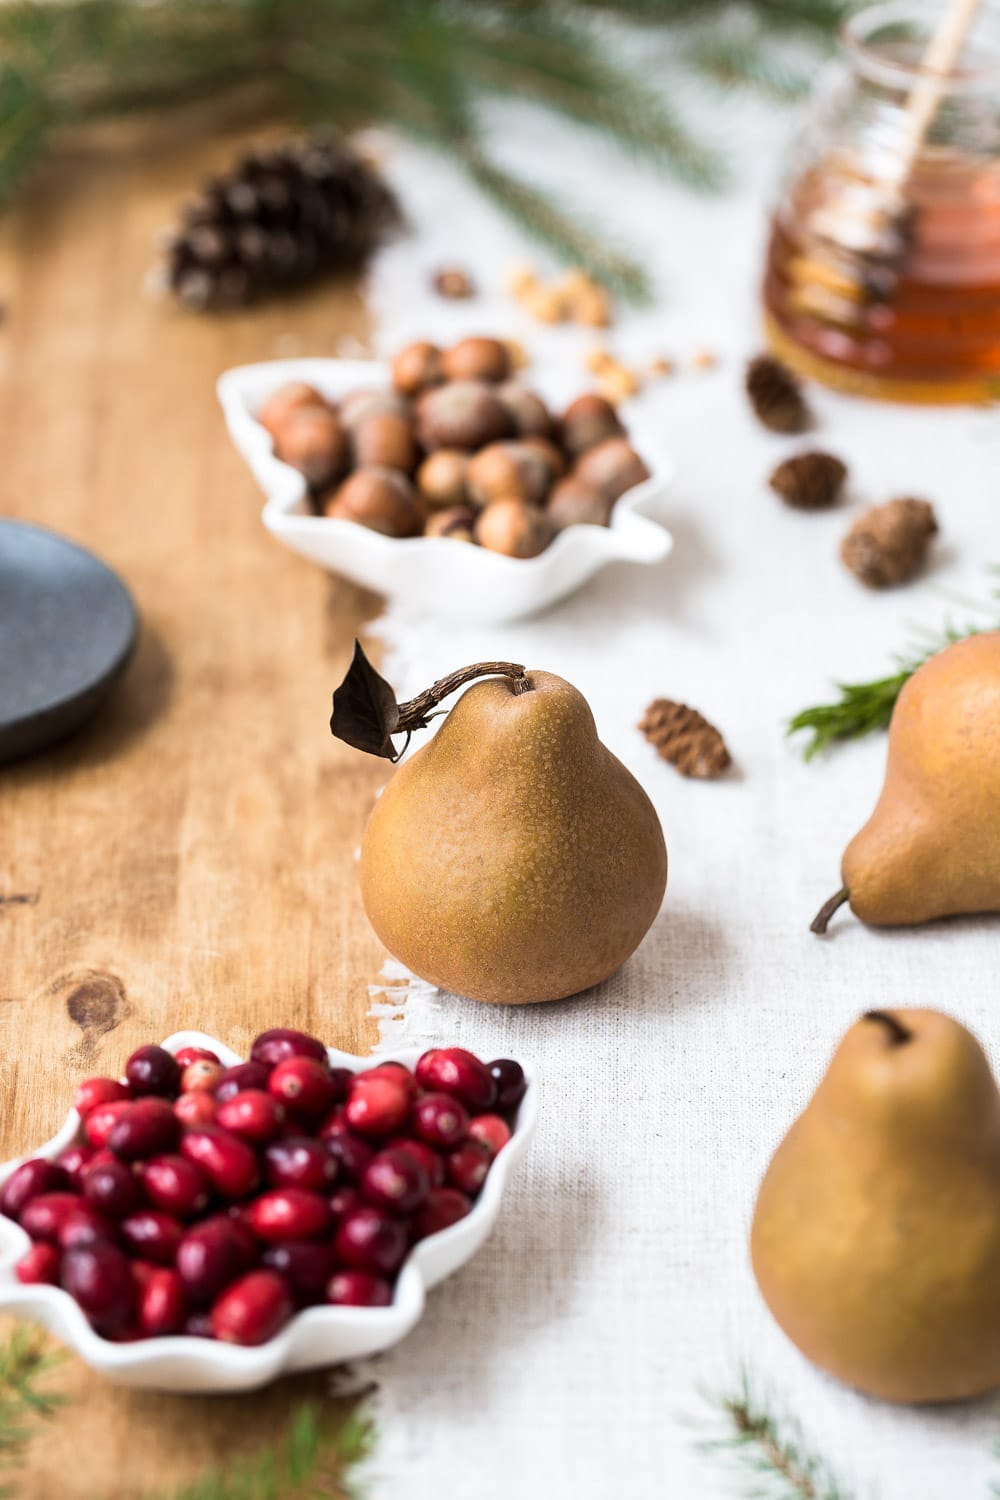 Ingredients for Cranberry Poached Pears are laid out